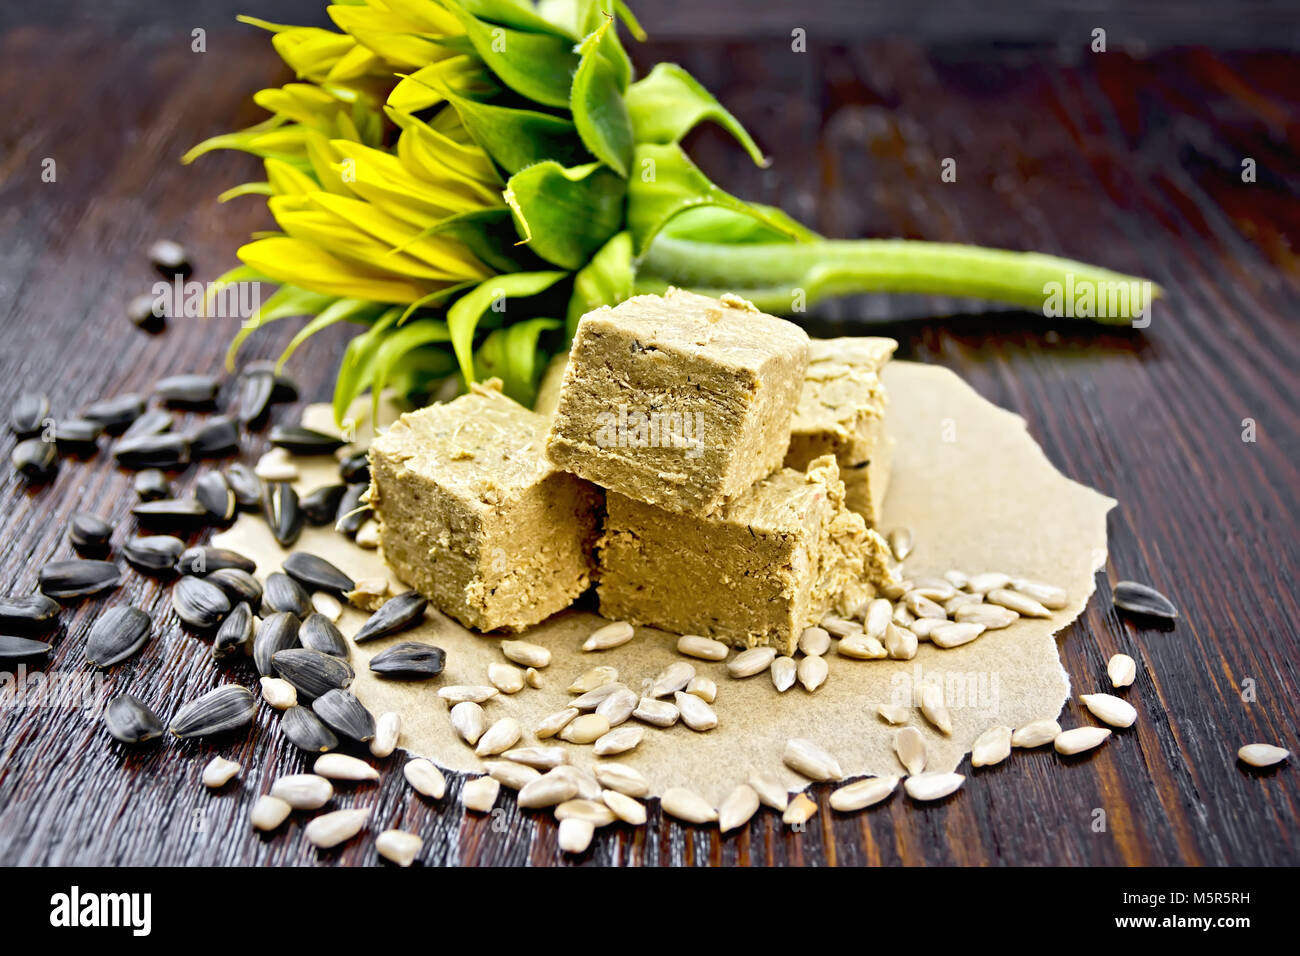 Eastern sweet halva sunflower on paper, sunflower seeds and flower on a background of a dark wooden board - Stock Image